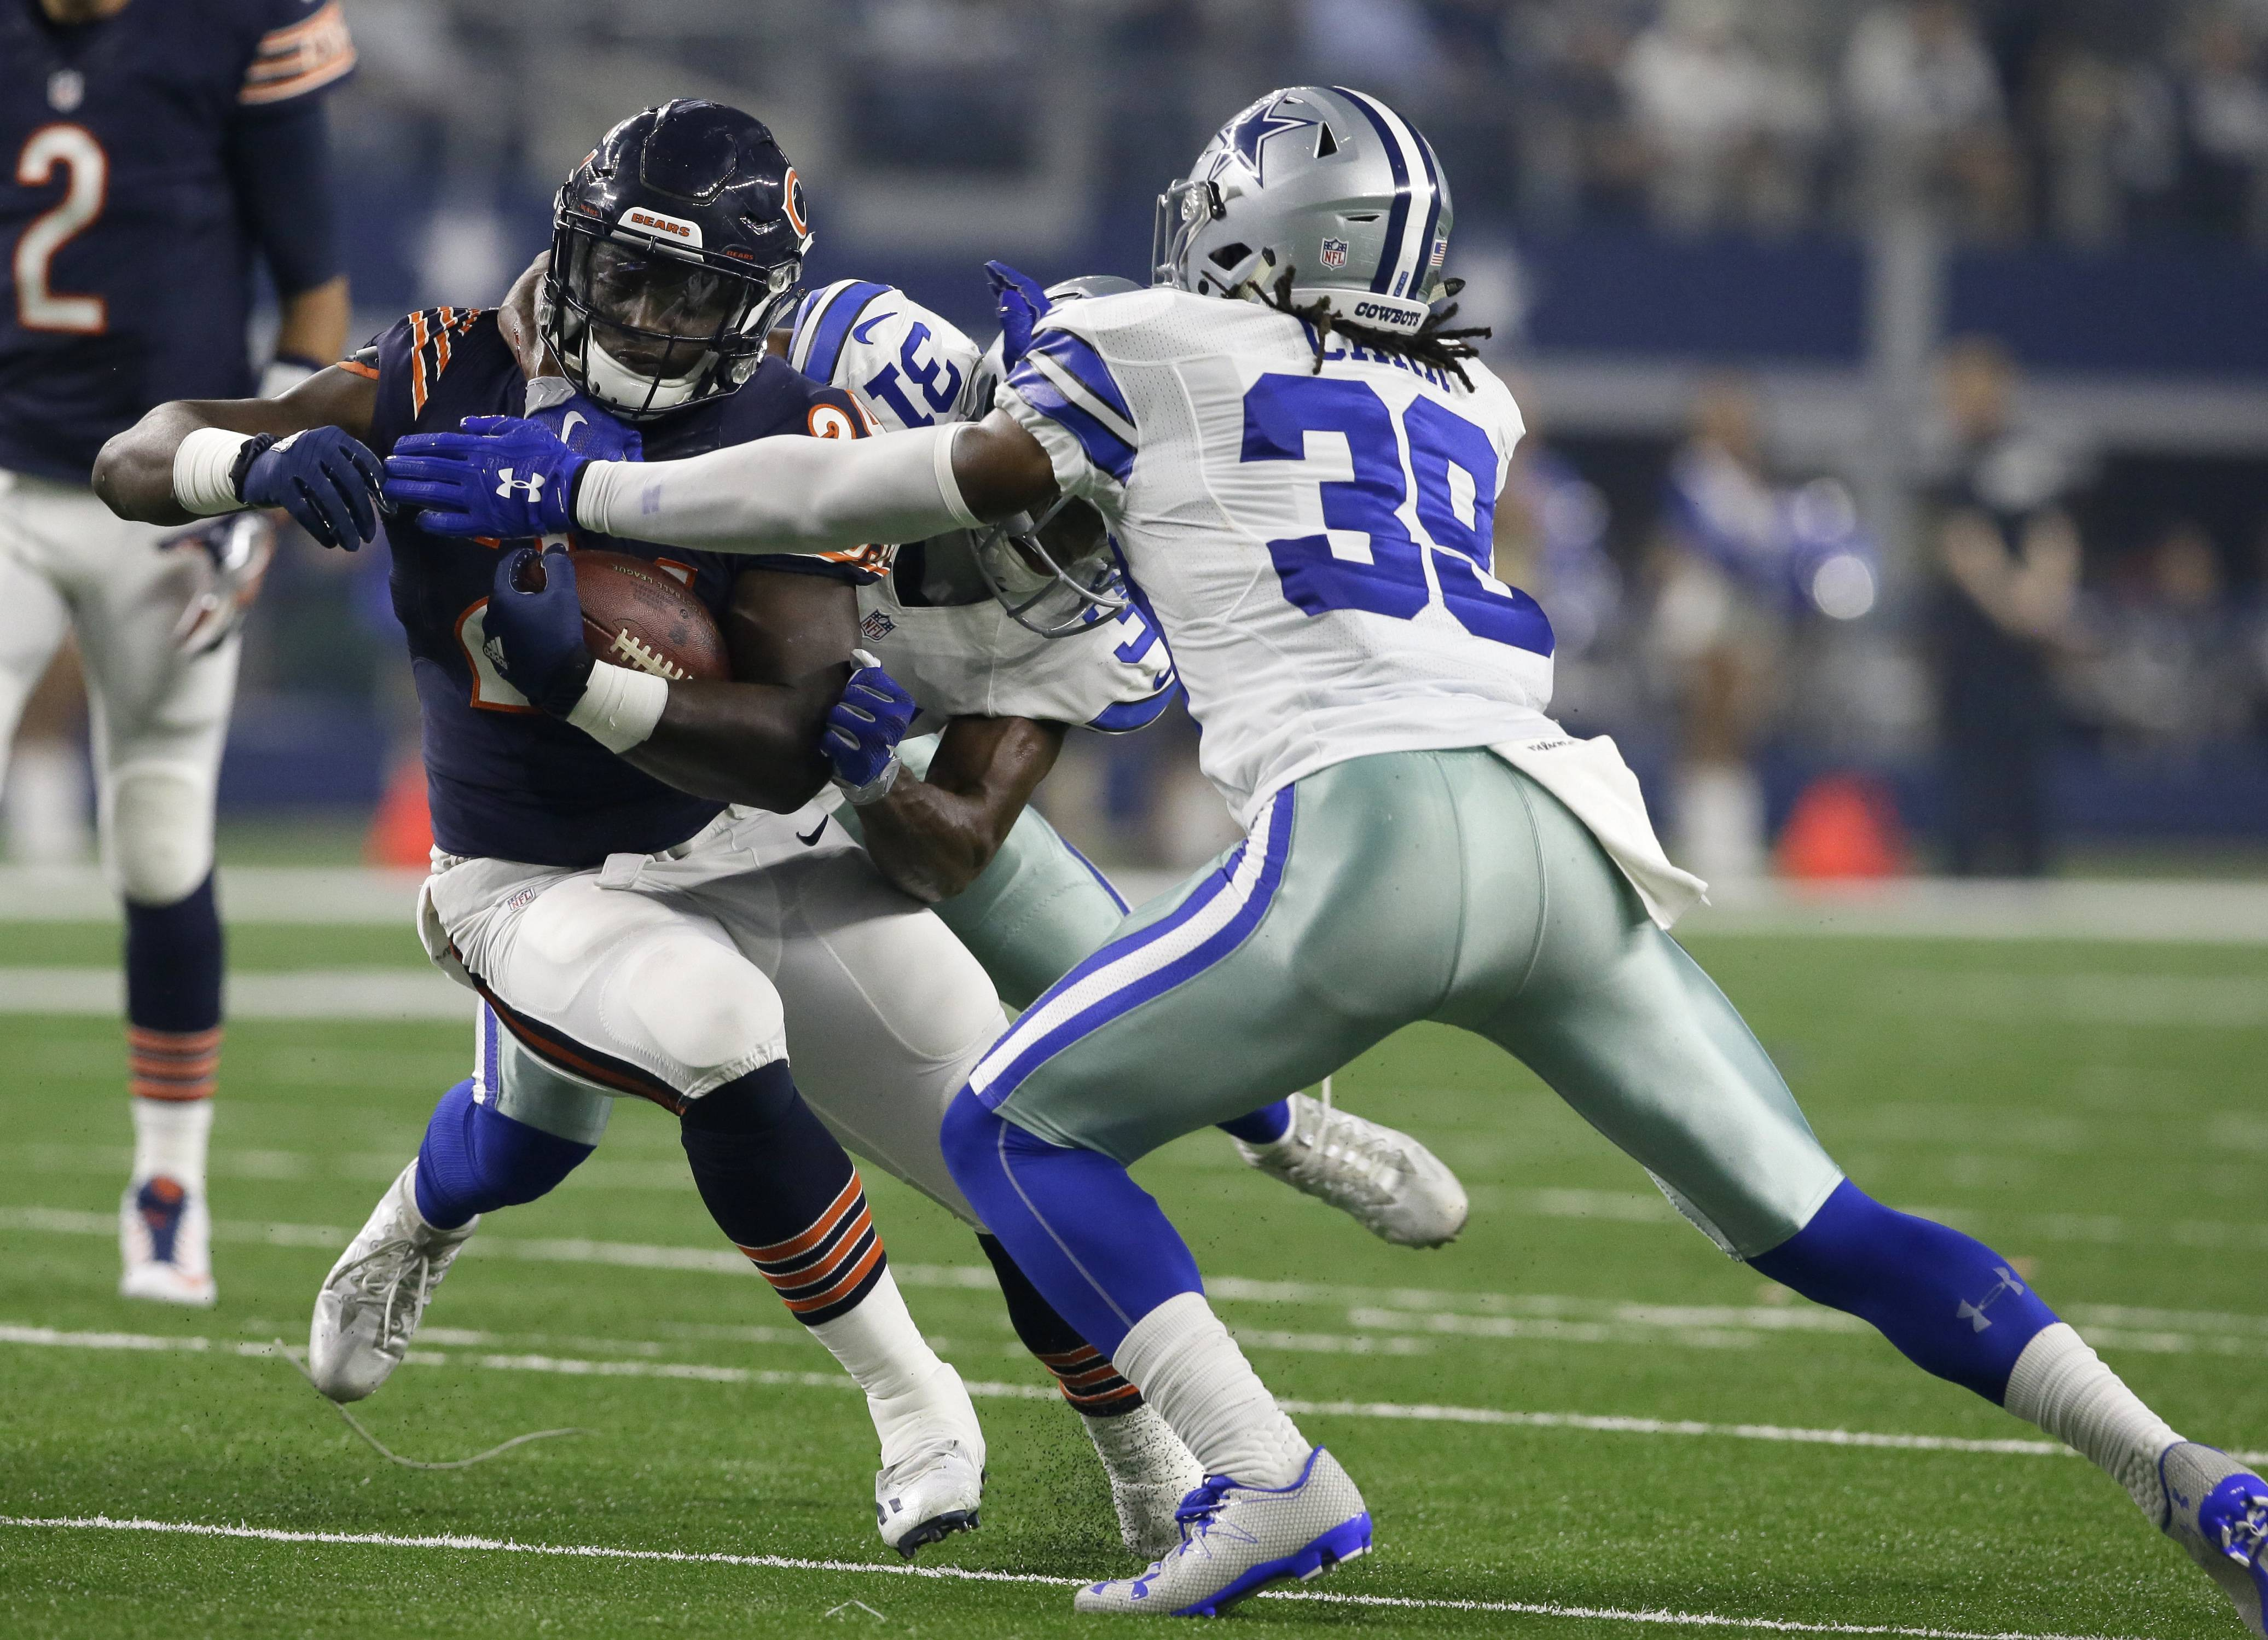 When Jordan Howard was drafted in the fifth round (150th overall) back in April, he never considered he might be the Bears' featured running back by Week Four. But Howard will do most of the heavy lifting in the ground game Sunday against the Lions at Soldier Field, where the Bears have lost 11 of their last 12.